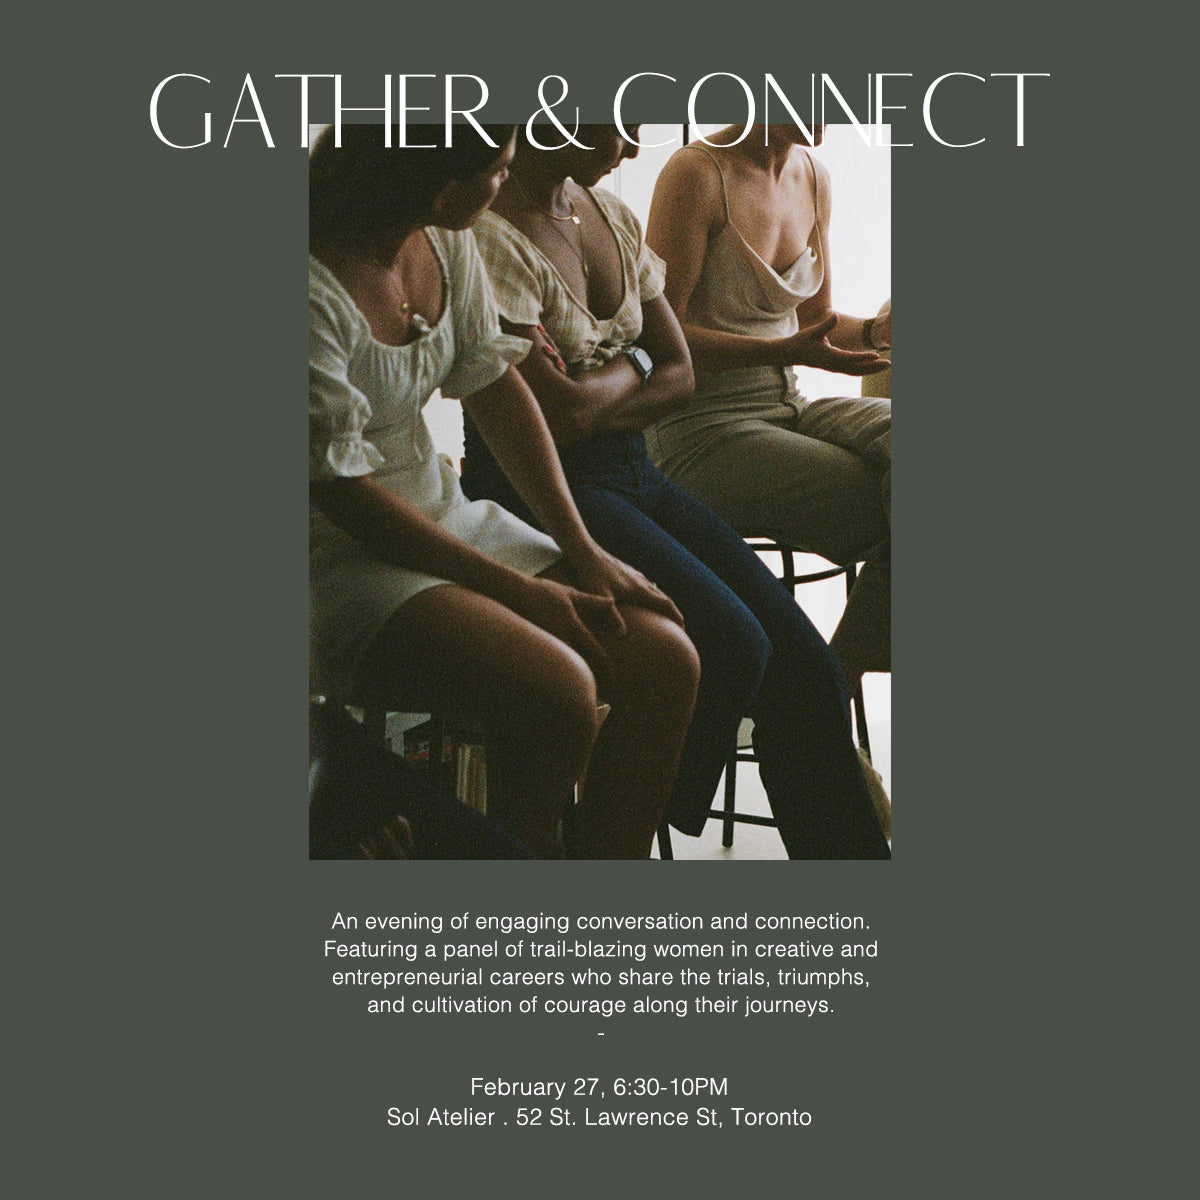 EVENT REGISTRATION: Gather & Connect